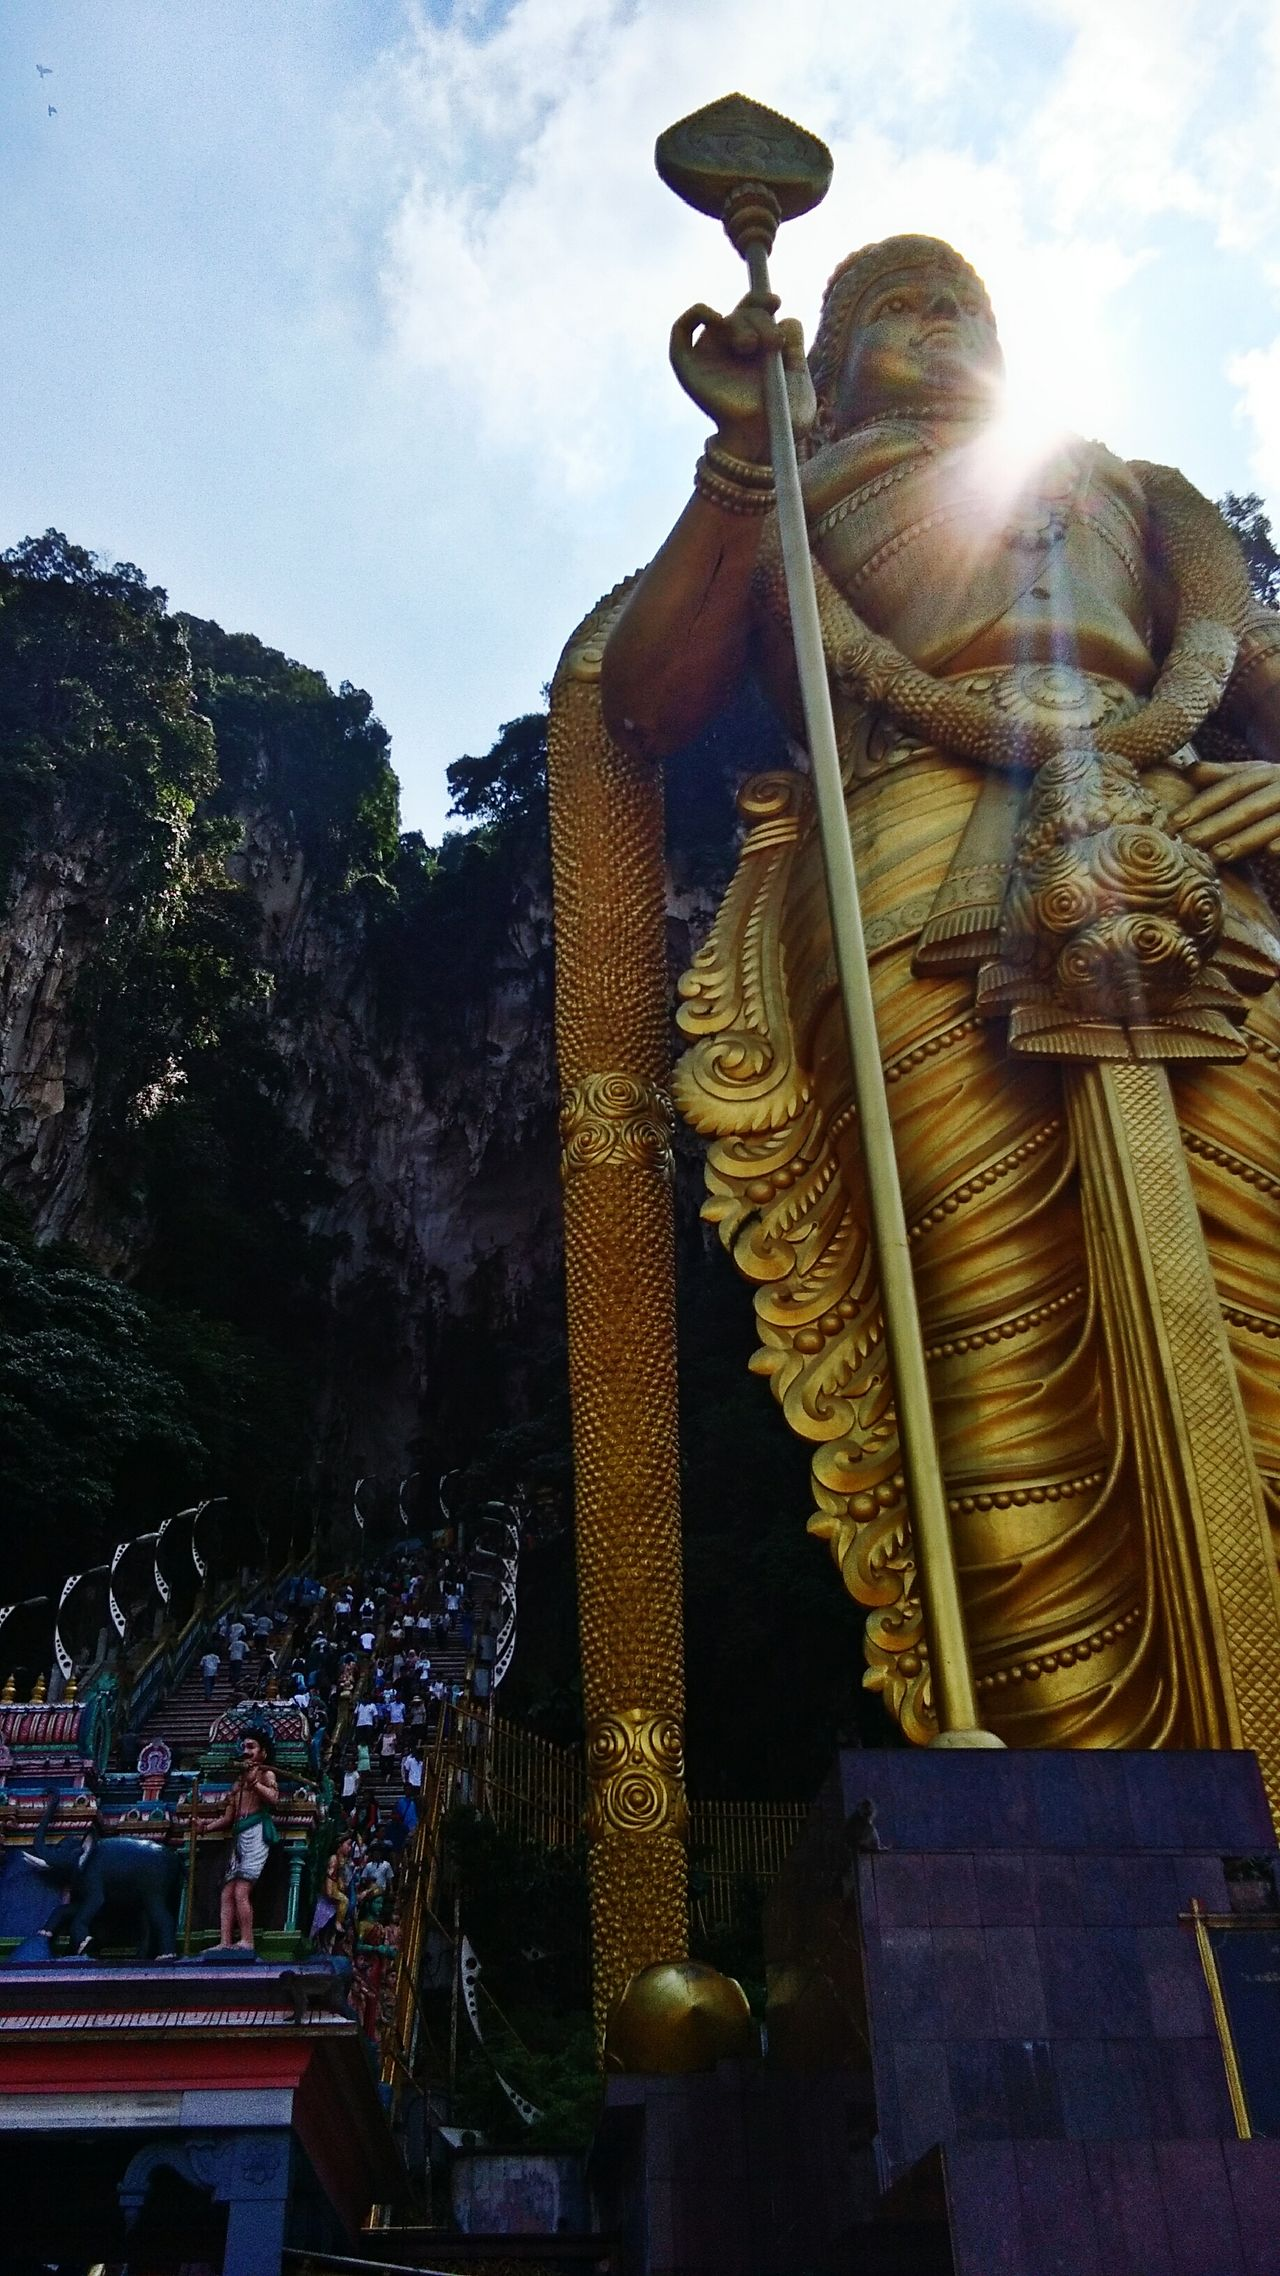 43 Golden Moments Batu Caves Lordmuruga Malaysia Indiantemple Goldenstatue Showcase July Tourist Attraction